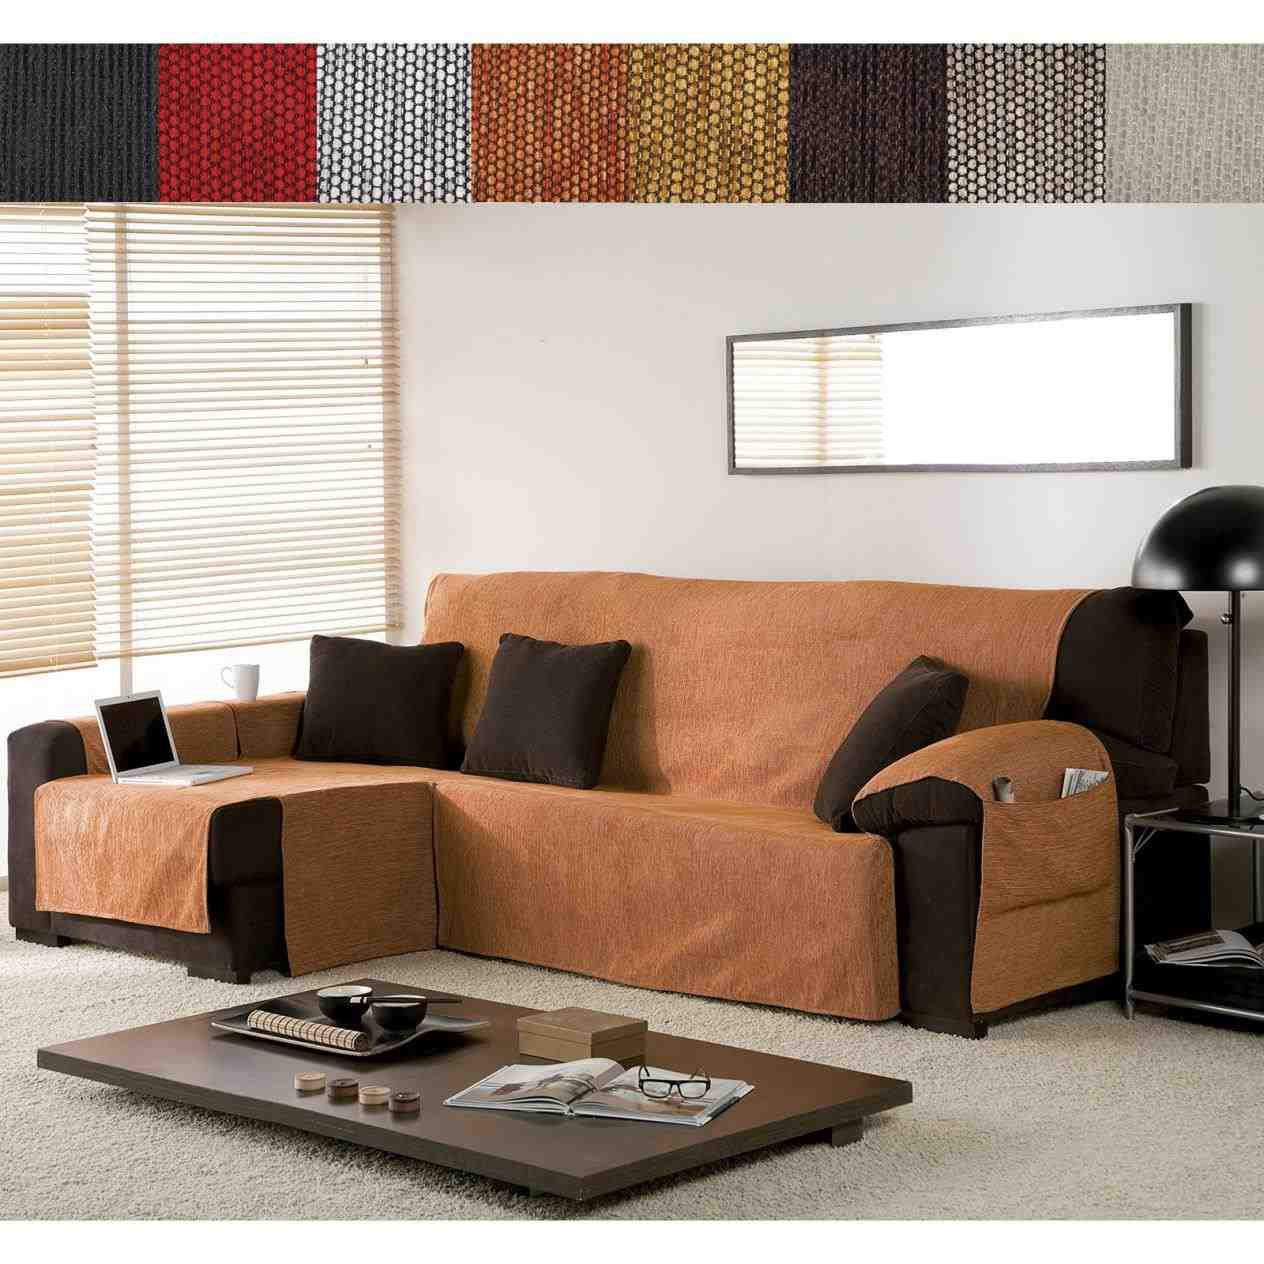 Fundas De sofa Ajustables Conforama Q5df Fundas De sofa Conforama Simple Chaise Longue Reversible Con Cama